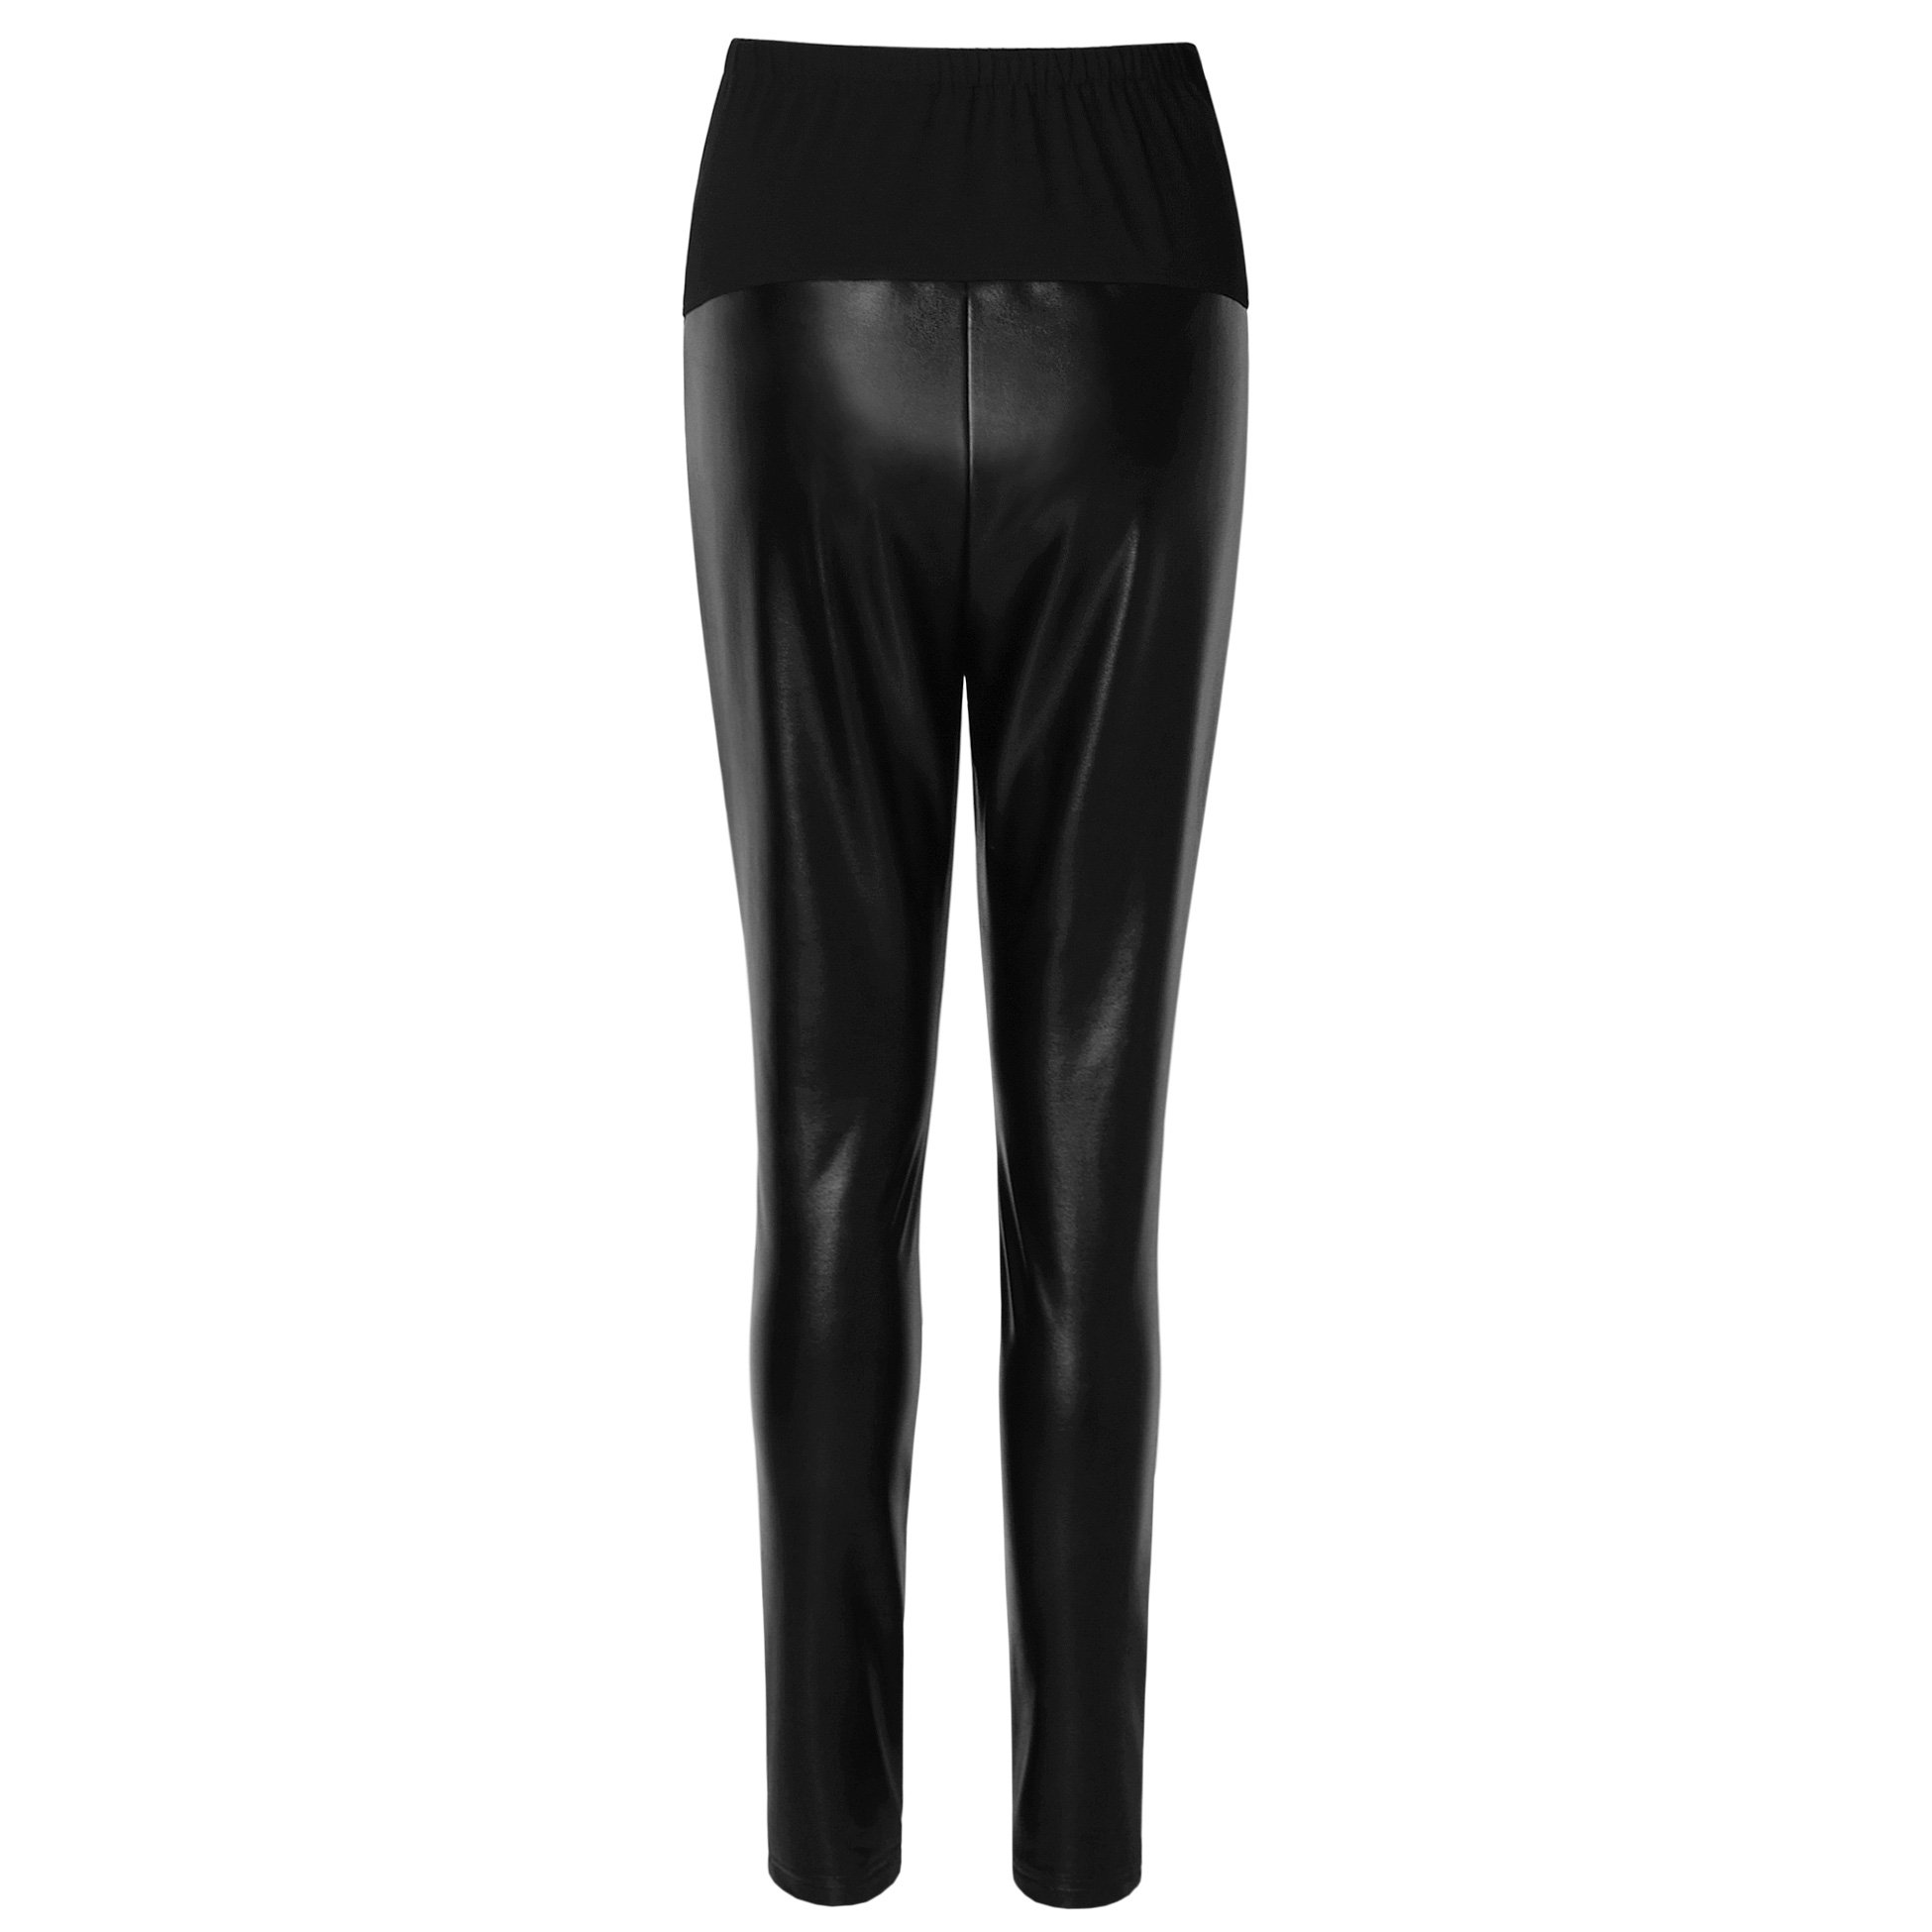 ee5b55872e3e7 Bhome Maternity Pants Stretch High Waisted Pants, Warm Lining Fashion Faux  Leather Leggings,Dress Pants for Work < Clothing < Clothing, Shoes &  Jewelry - ...